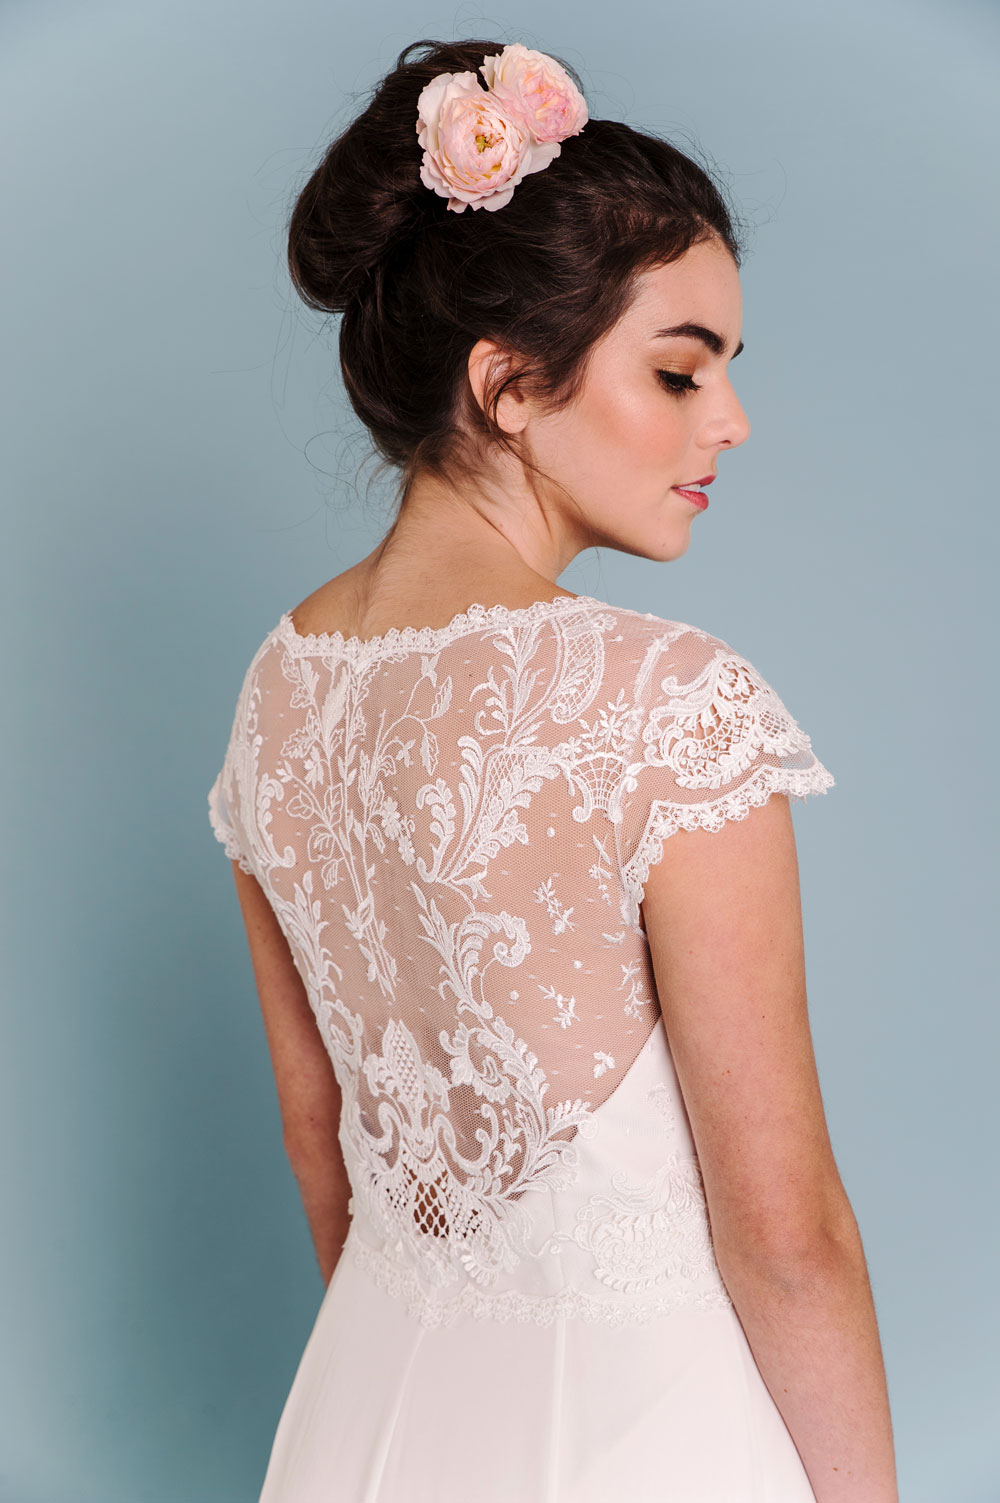 SALLY EAGLE BRIDAL– gloriana